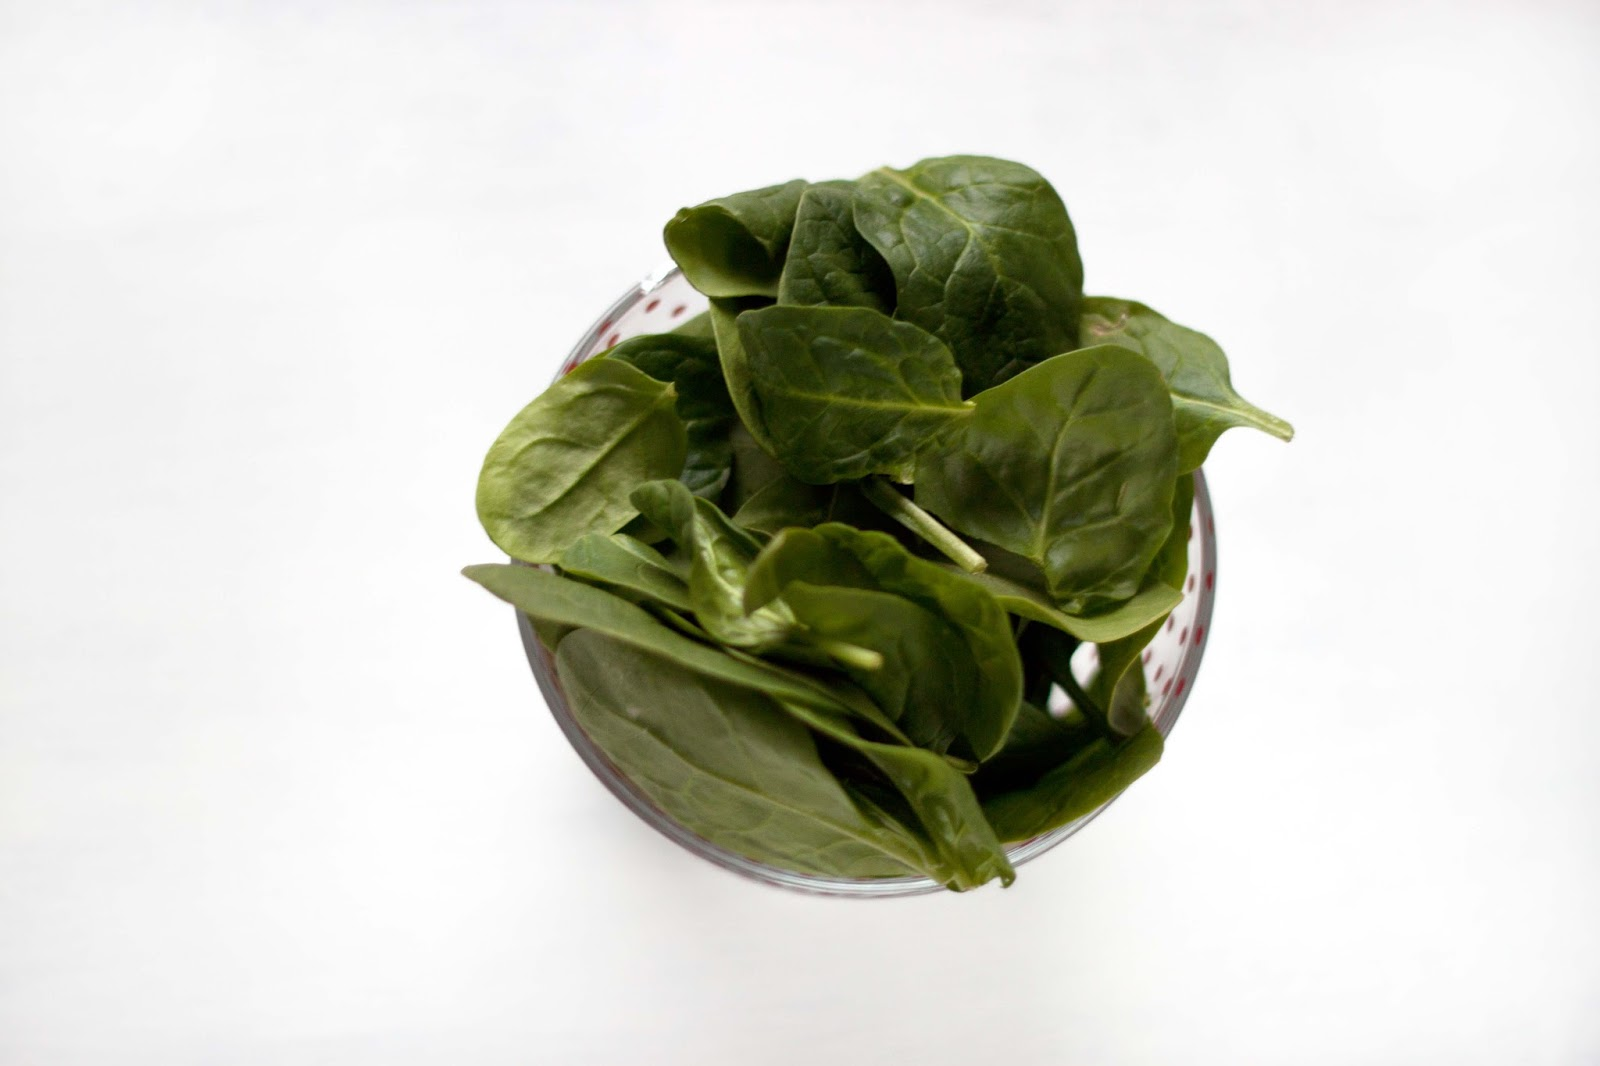 HEALTH BENEFITS OF: SPINACH